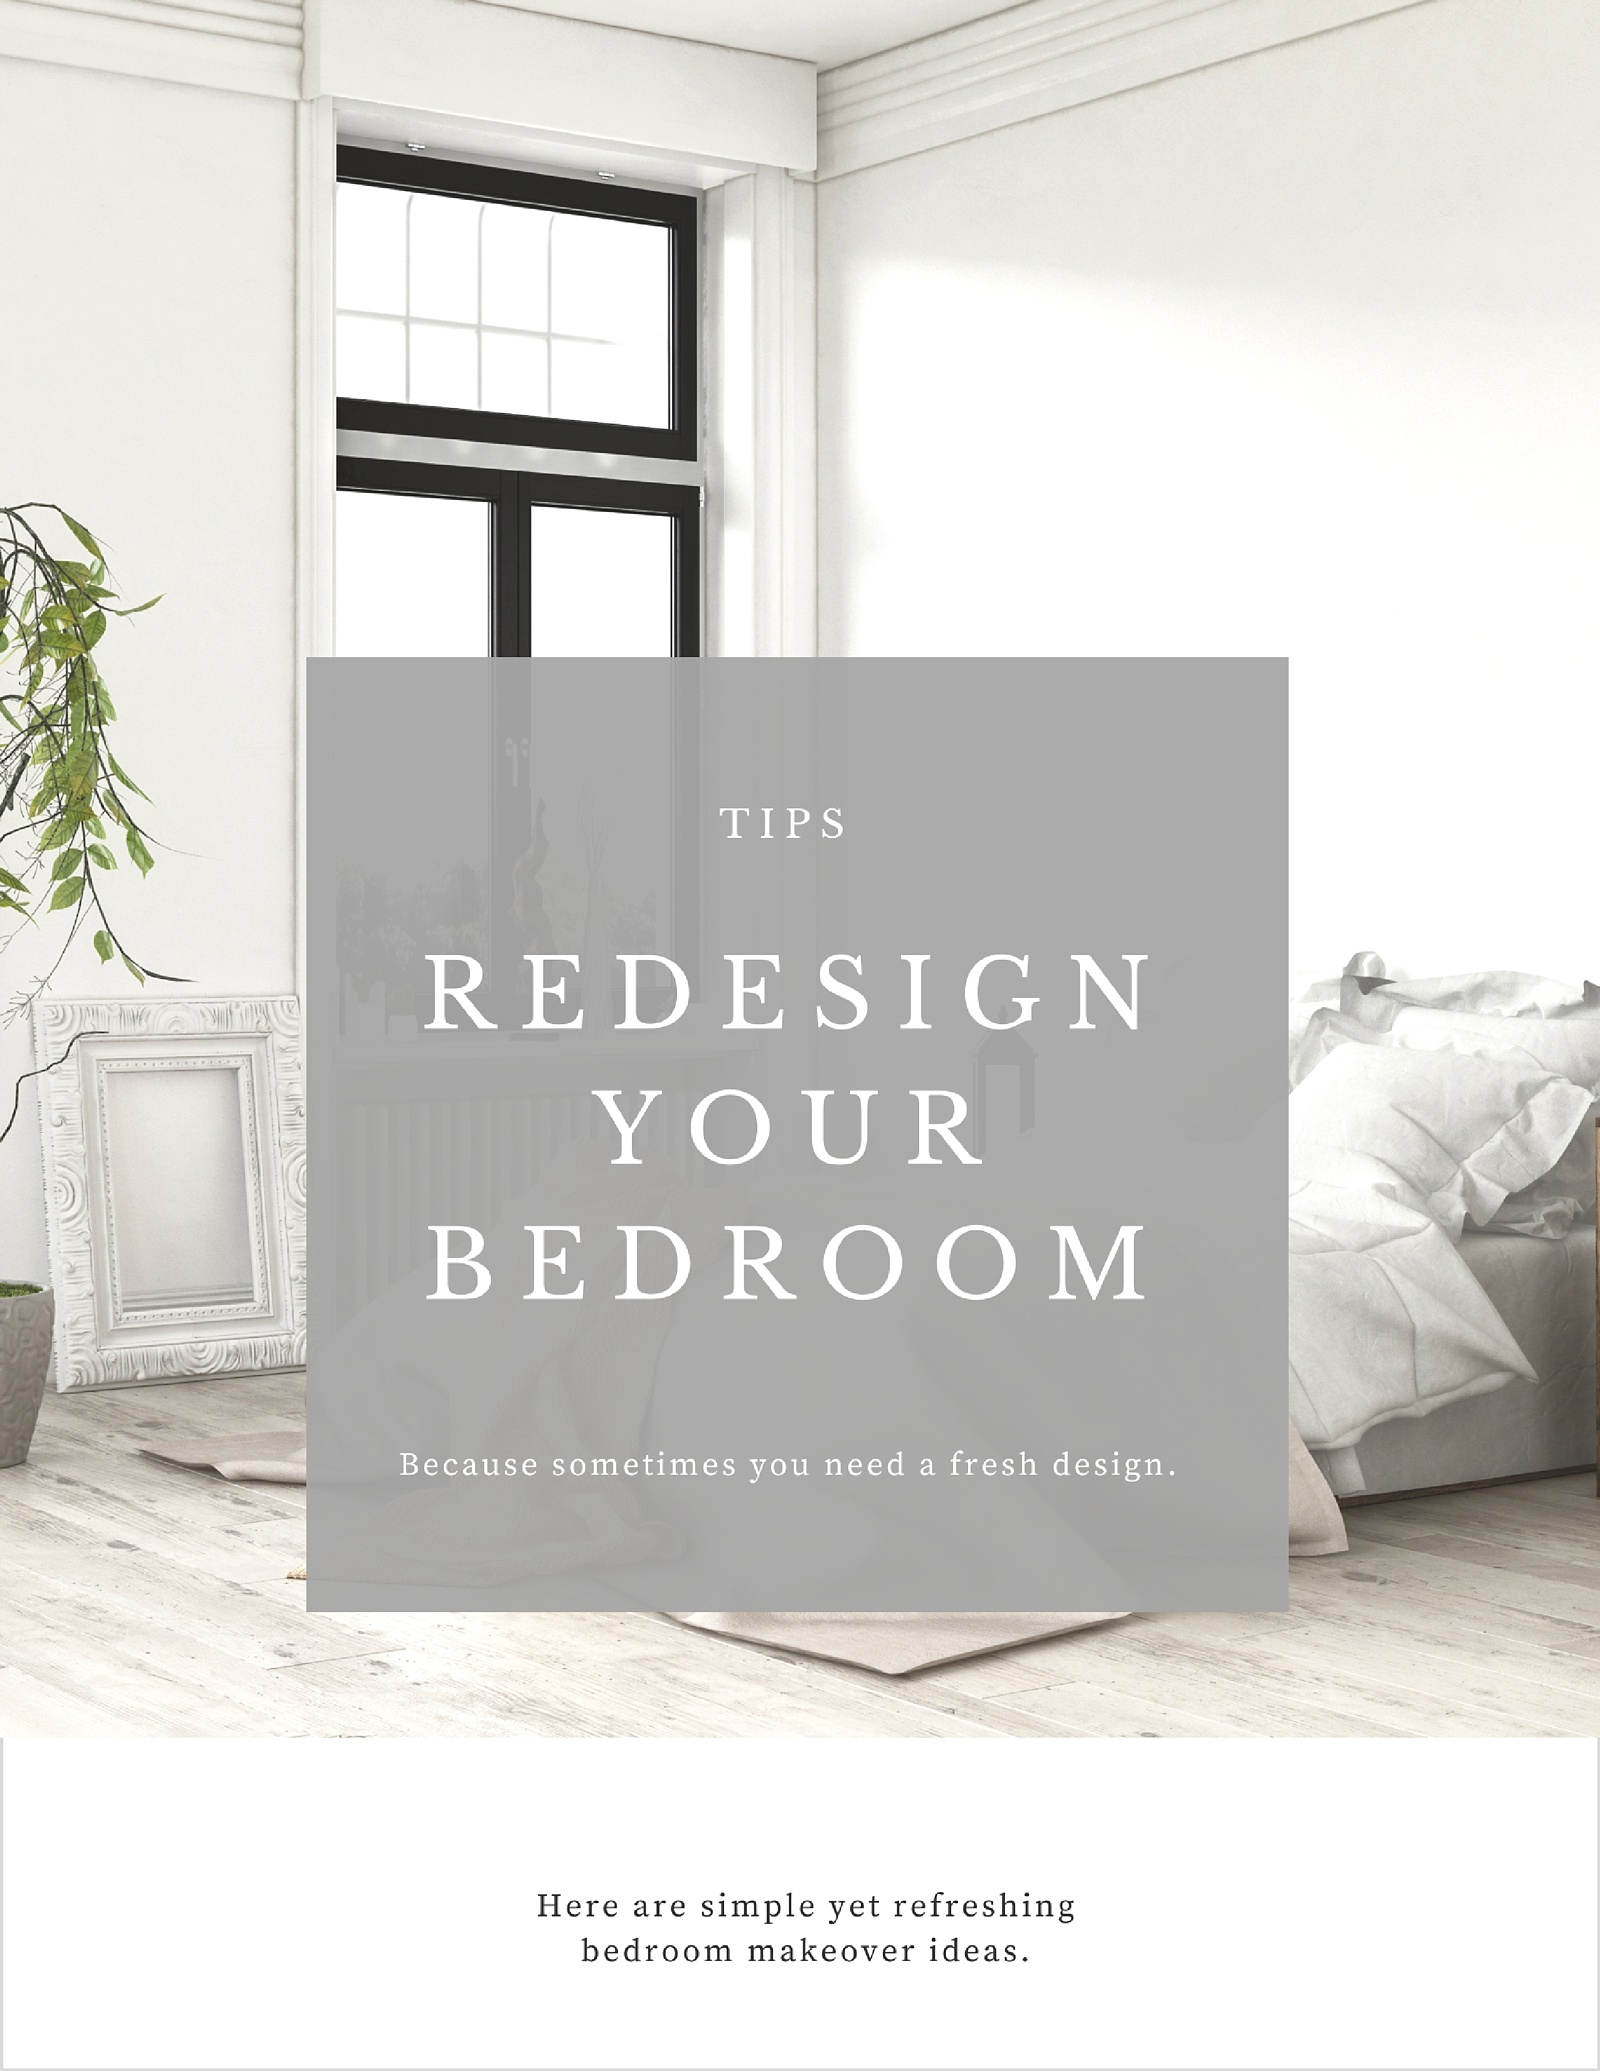 8 Refreshing Bedroom Makeover Tips - How To: Simplify